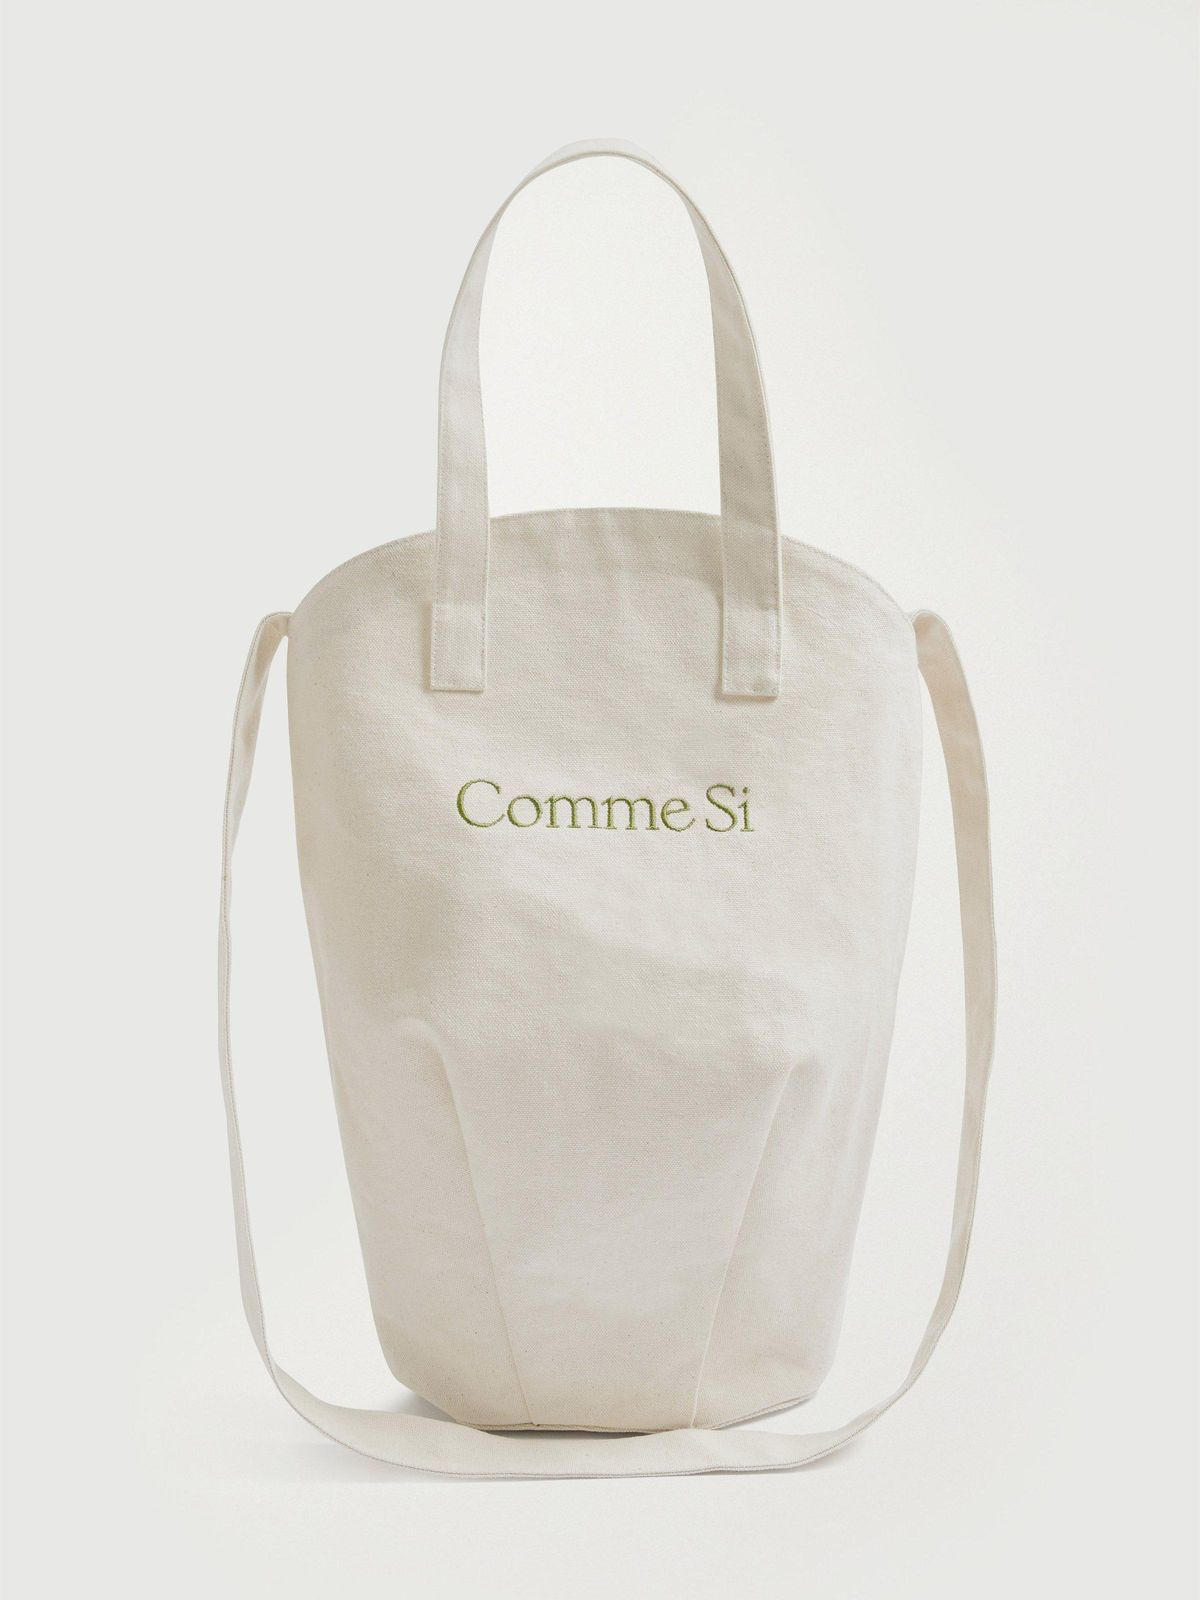 The Flower Tote